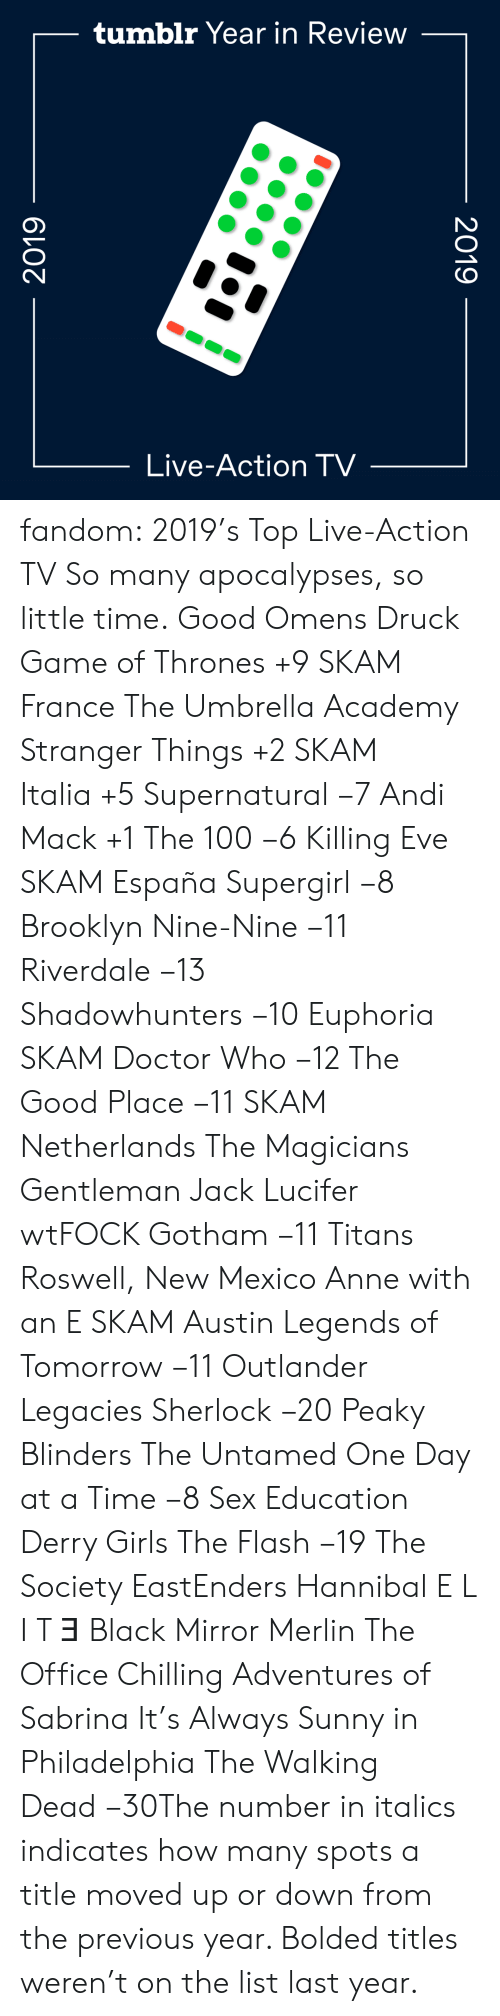 sunny: tumblr Year in Review  Live-Action TV-  2019  2019 fandom:  2019's Top Live-Action TV  So many apocalypses, so little time.  Good Omens  Druck  Game of Thrones +9  SKAM France  The Umbrella Academy  Stranger Things +2  SKAM Italia +5  Supernatural −7  Andi Mack +1  The 100 −6  Killing Eve   SKAM España  Supergirl −8  Brooklyn Nine-Nine −11  Riverdale −13  Shadowhunters −10  Euphoria  SKAM  Doctor Who −12  The Good Place −11  SKAM Netherlands  The Magicians  Gentleman Jack  Lucifer  wtFOCK  Gotham −11  Titans  Roswell, New Mexico  Anne with an E  SKAM Austin  Legends of Tomorrow −11  Outlander  Legacies  Sherlock −20  Peaky Blinders  The Untamed  One Day at a Time −8  Sex Education  Derry Girls  The Flash −19  The Society  EastEnders  Hannibal  E L I T Ǝ  Black Mirror  Merlin  The Office  Chilling Adventures of Sabrina  It's Always Sunny in Philadelphia The Walking Dead −30The number in italics indicates how many spots a title moved up or down from the previous year. Bolded titles weren't on the list last year.